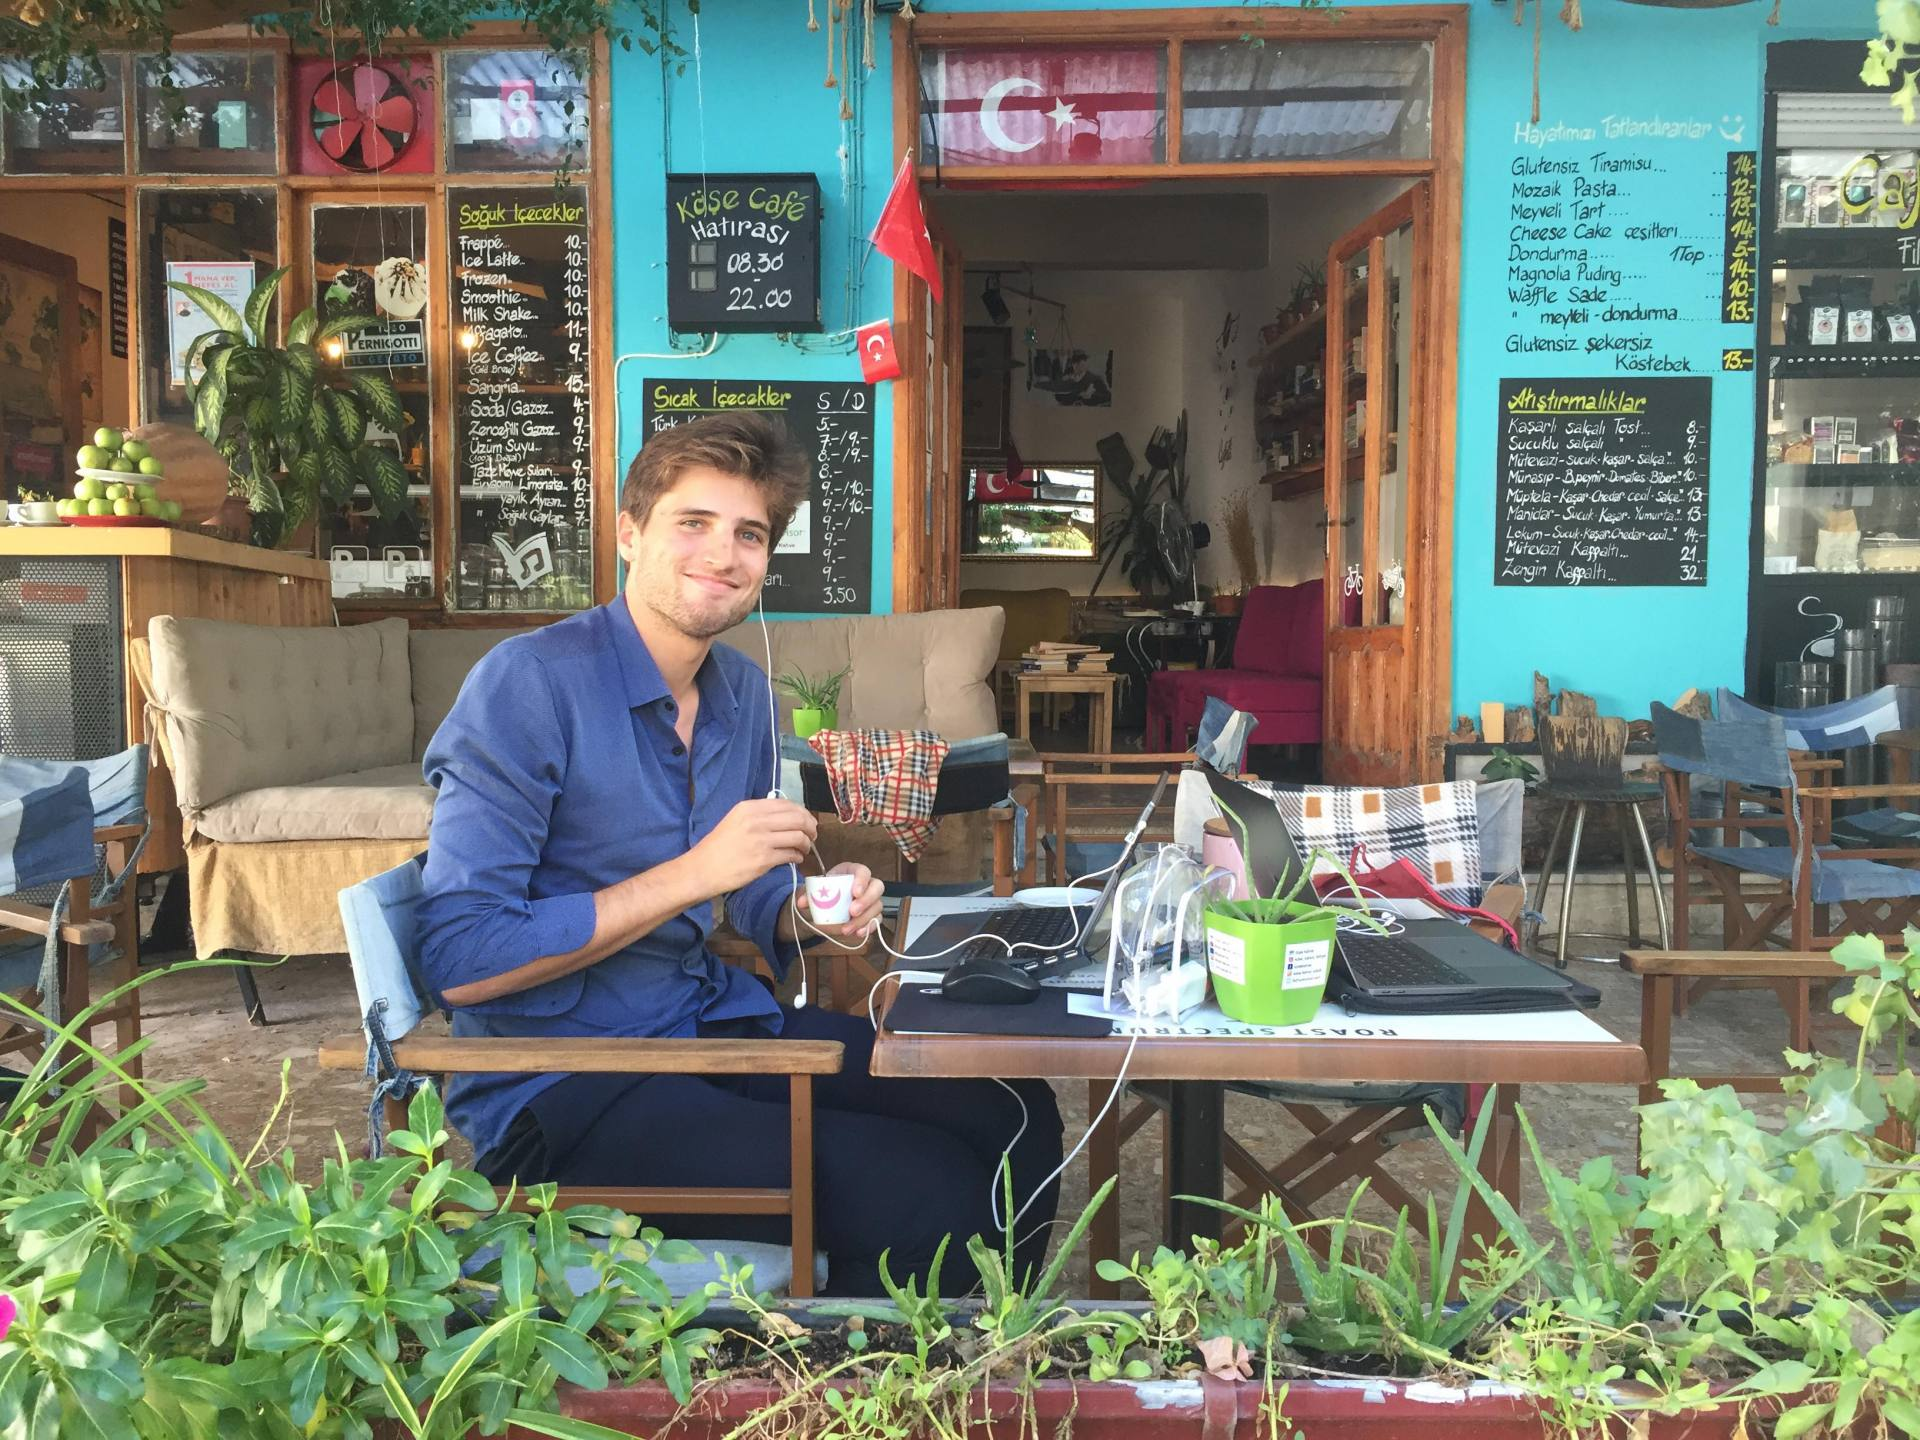 Do you want to build a start-up? Embrace digital nomad lifestyle first.